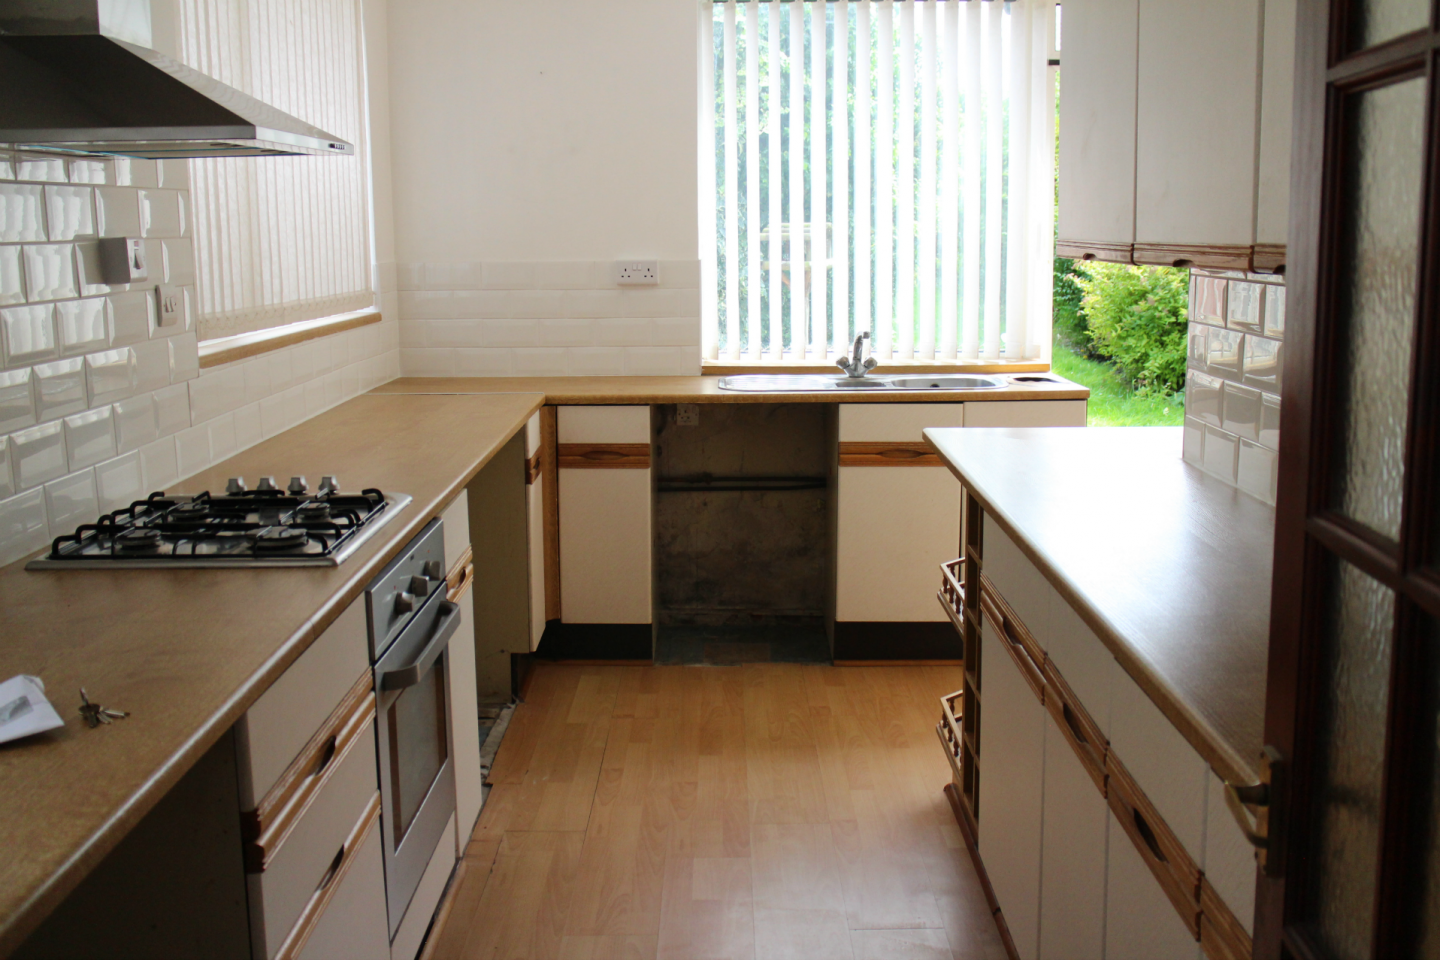 Our Dream Kitchen ǀ Our Renovation Project